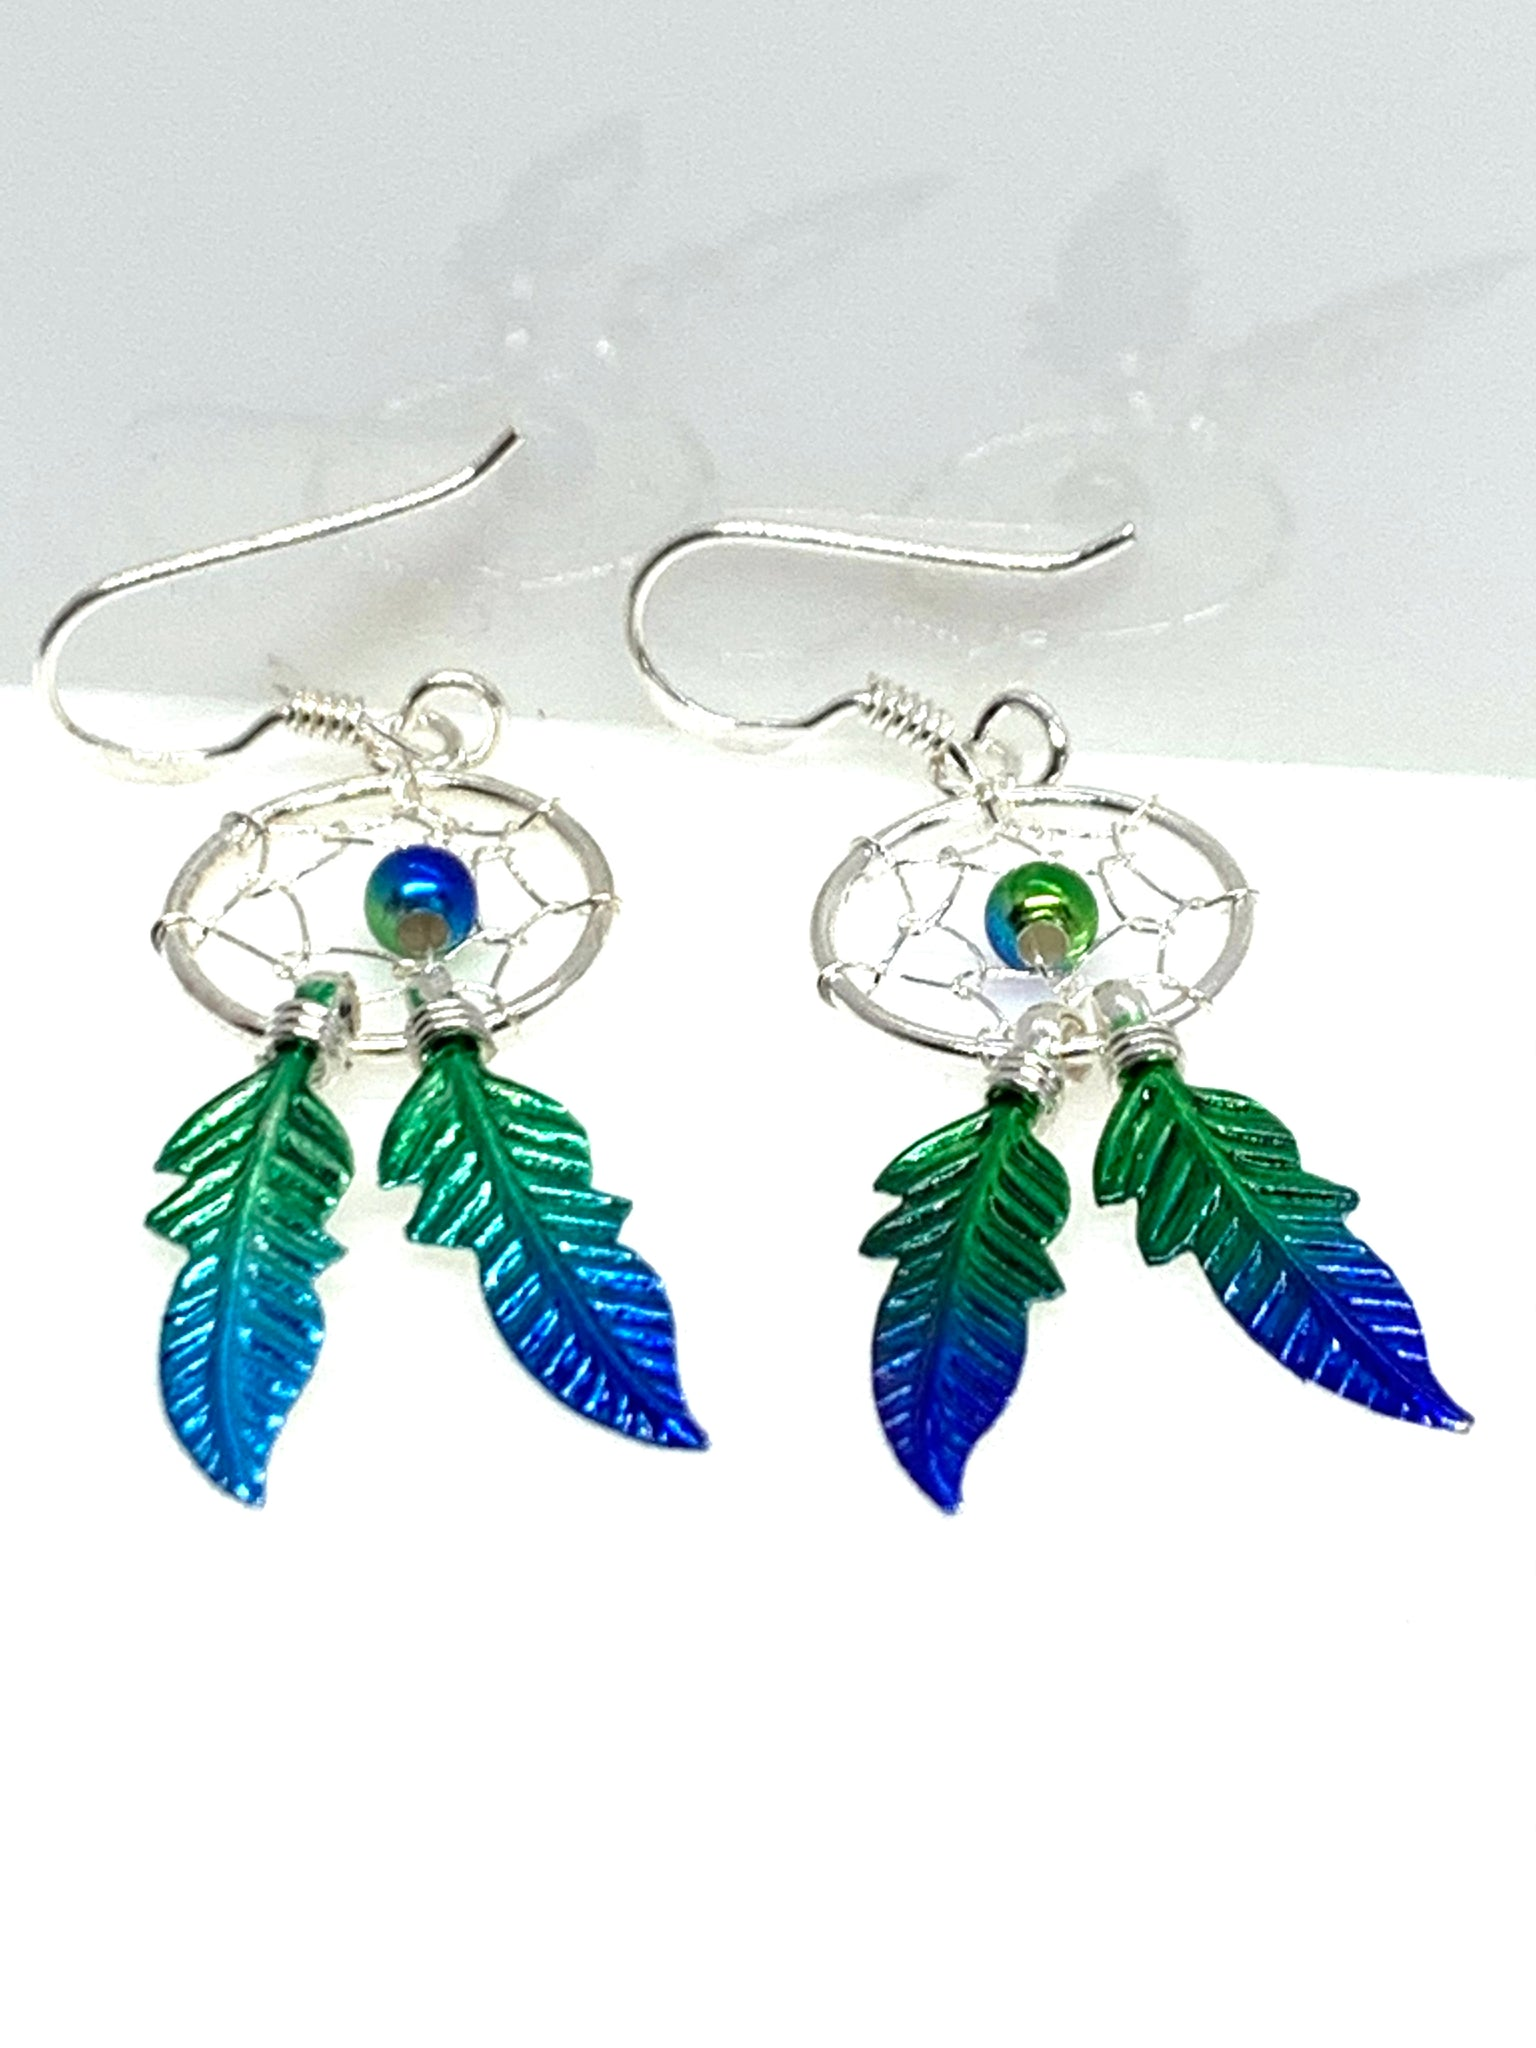 Turquoise & Green Dreamcatcher Earrings - pixi-daisy